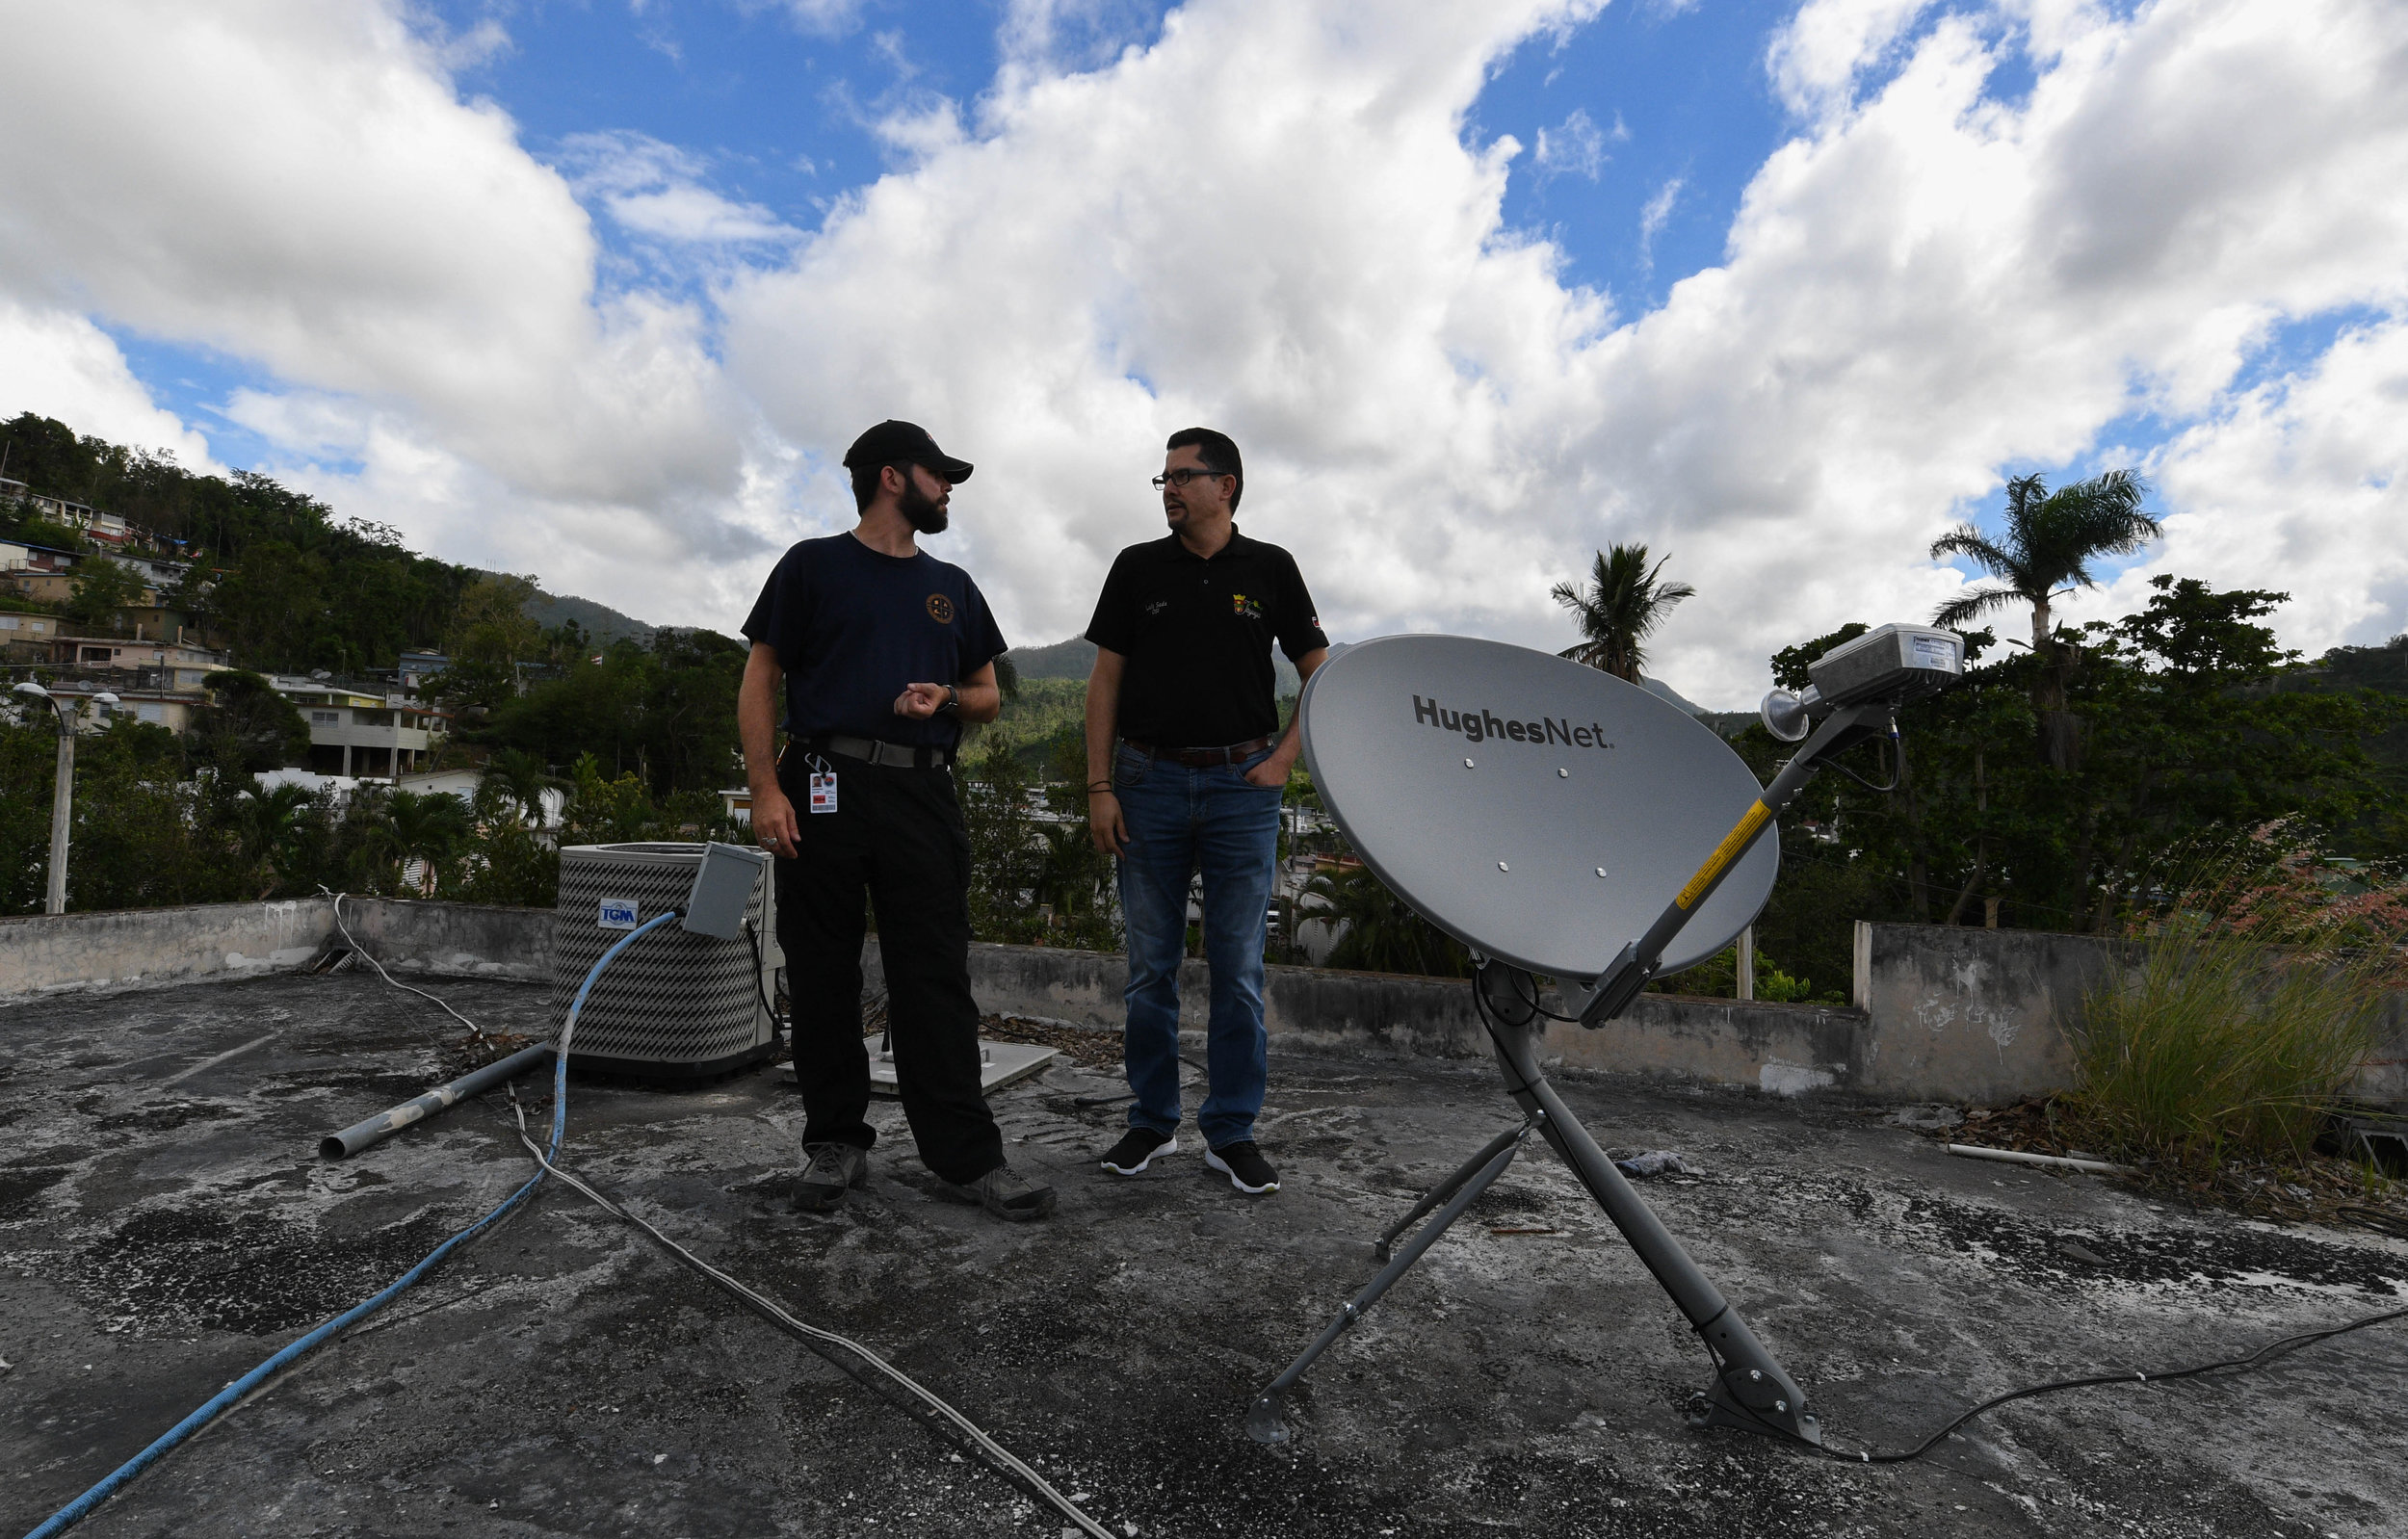 EXPAND   Darrick Kouns, a volunteer with Dallas-based nonprofit Information Technology Disaster Resource Center, discusses with Luis Seda, the network administrator for the mayor's office in the mountain village Jayuya, how they can supply communications for the local shelter. ITDRC deploys volunteers from all over the world to provide communities affected by disasters with resources to recover their IT infrastructure. Providing internet access and phones helps families reconnect when separated and aids businesses in reopening.